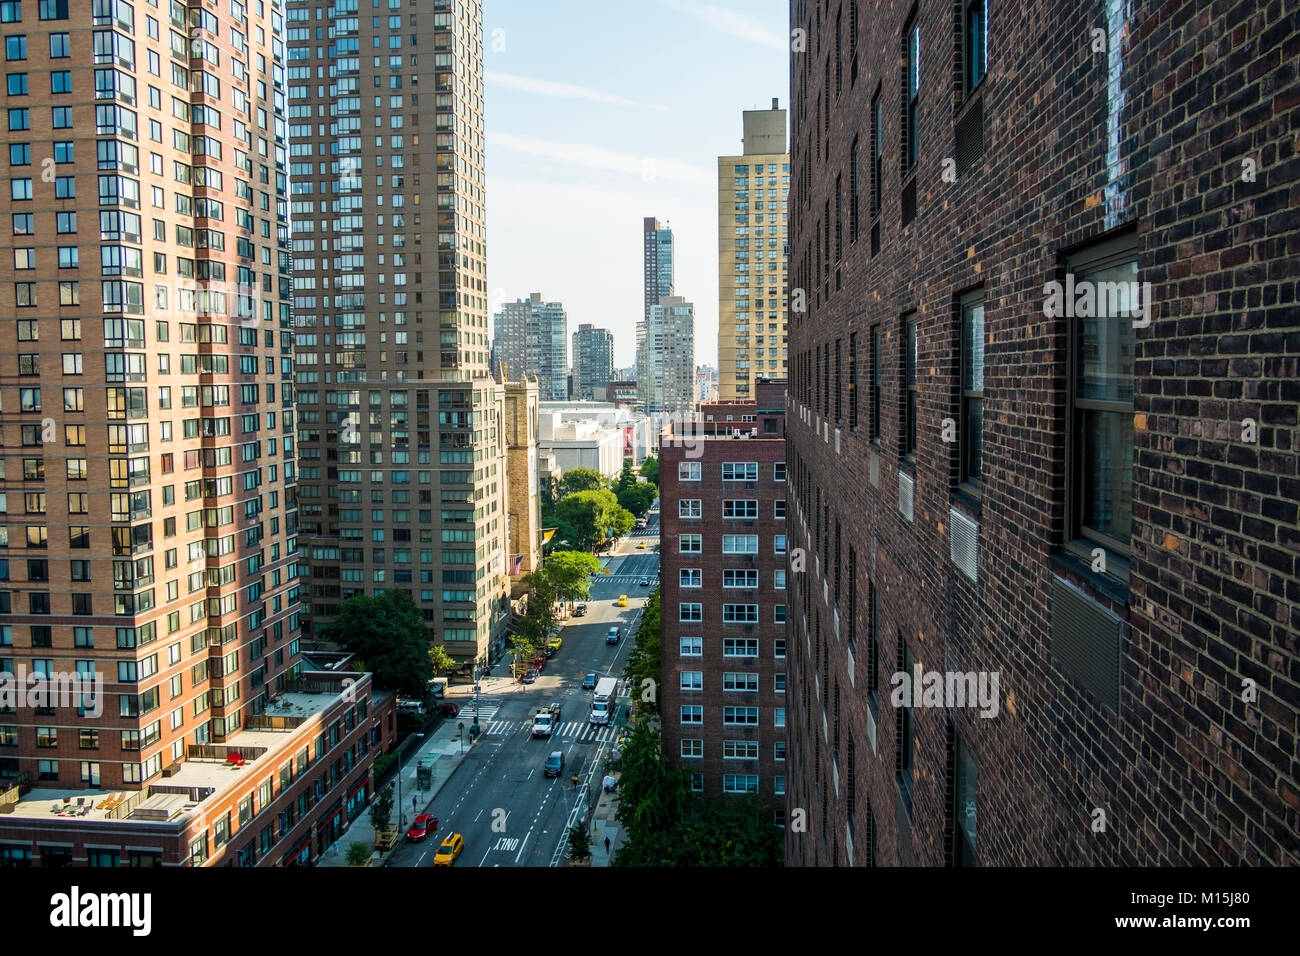 A view from a roof top somewhere on West 5th Street and 9th Avenue. Stock Photo